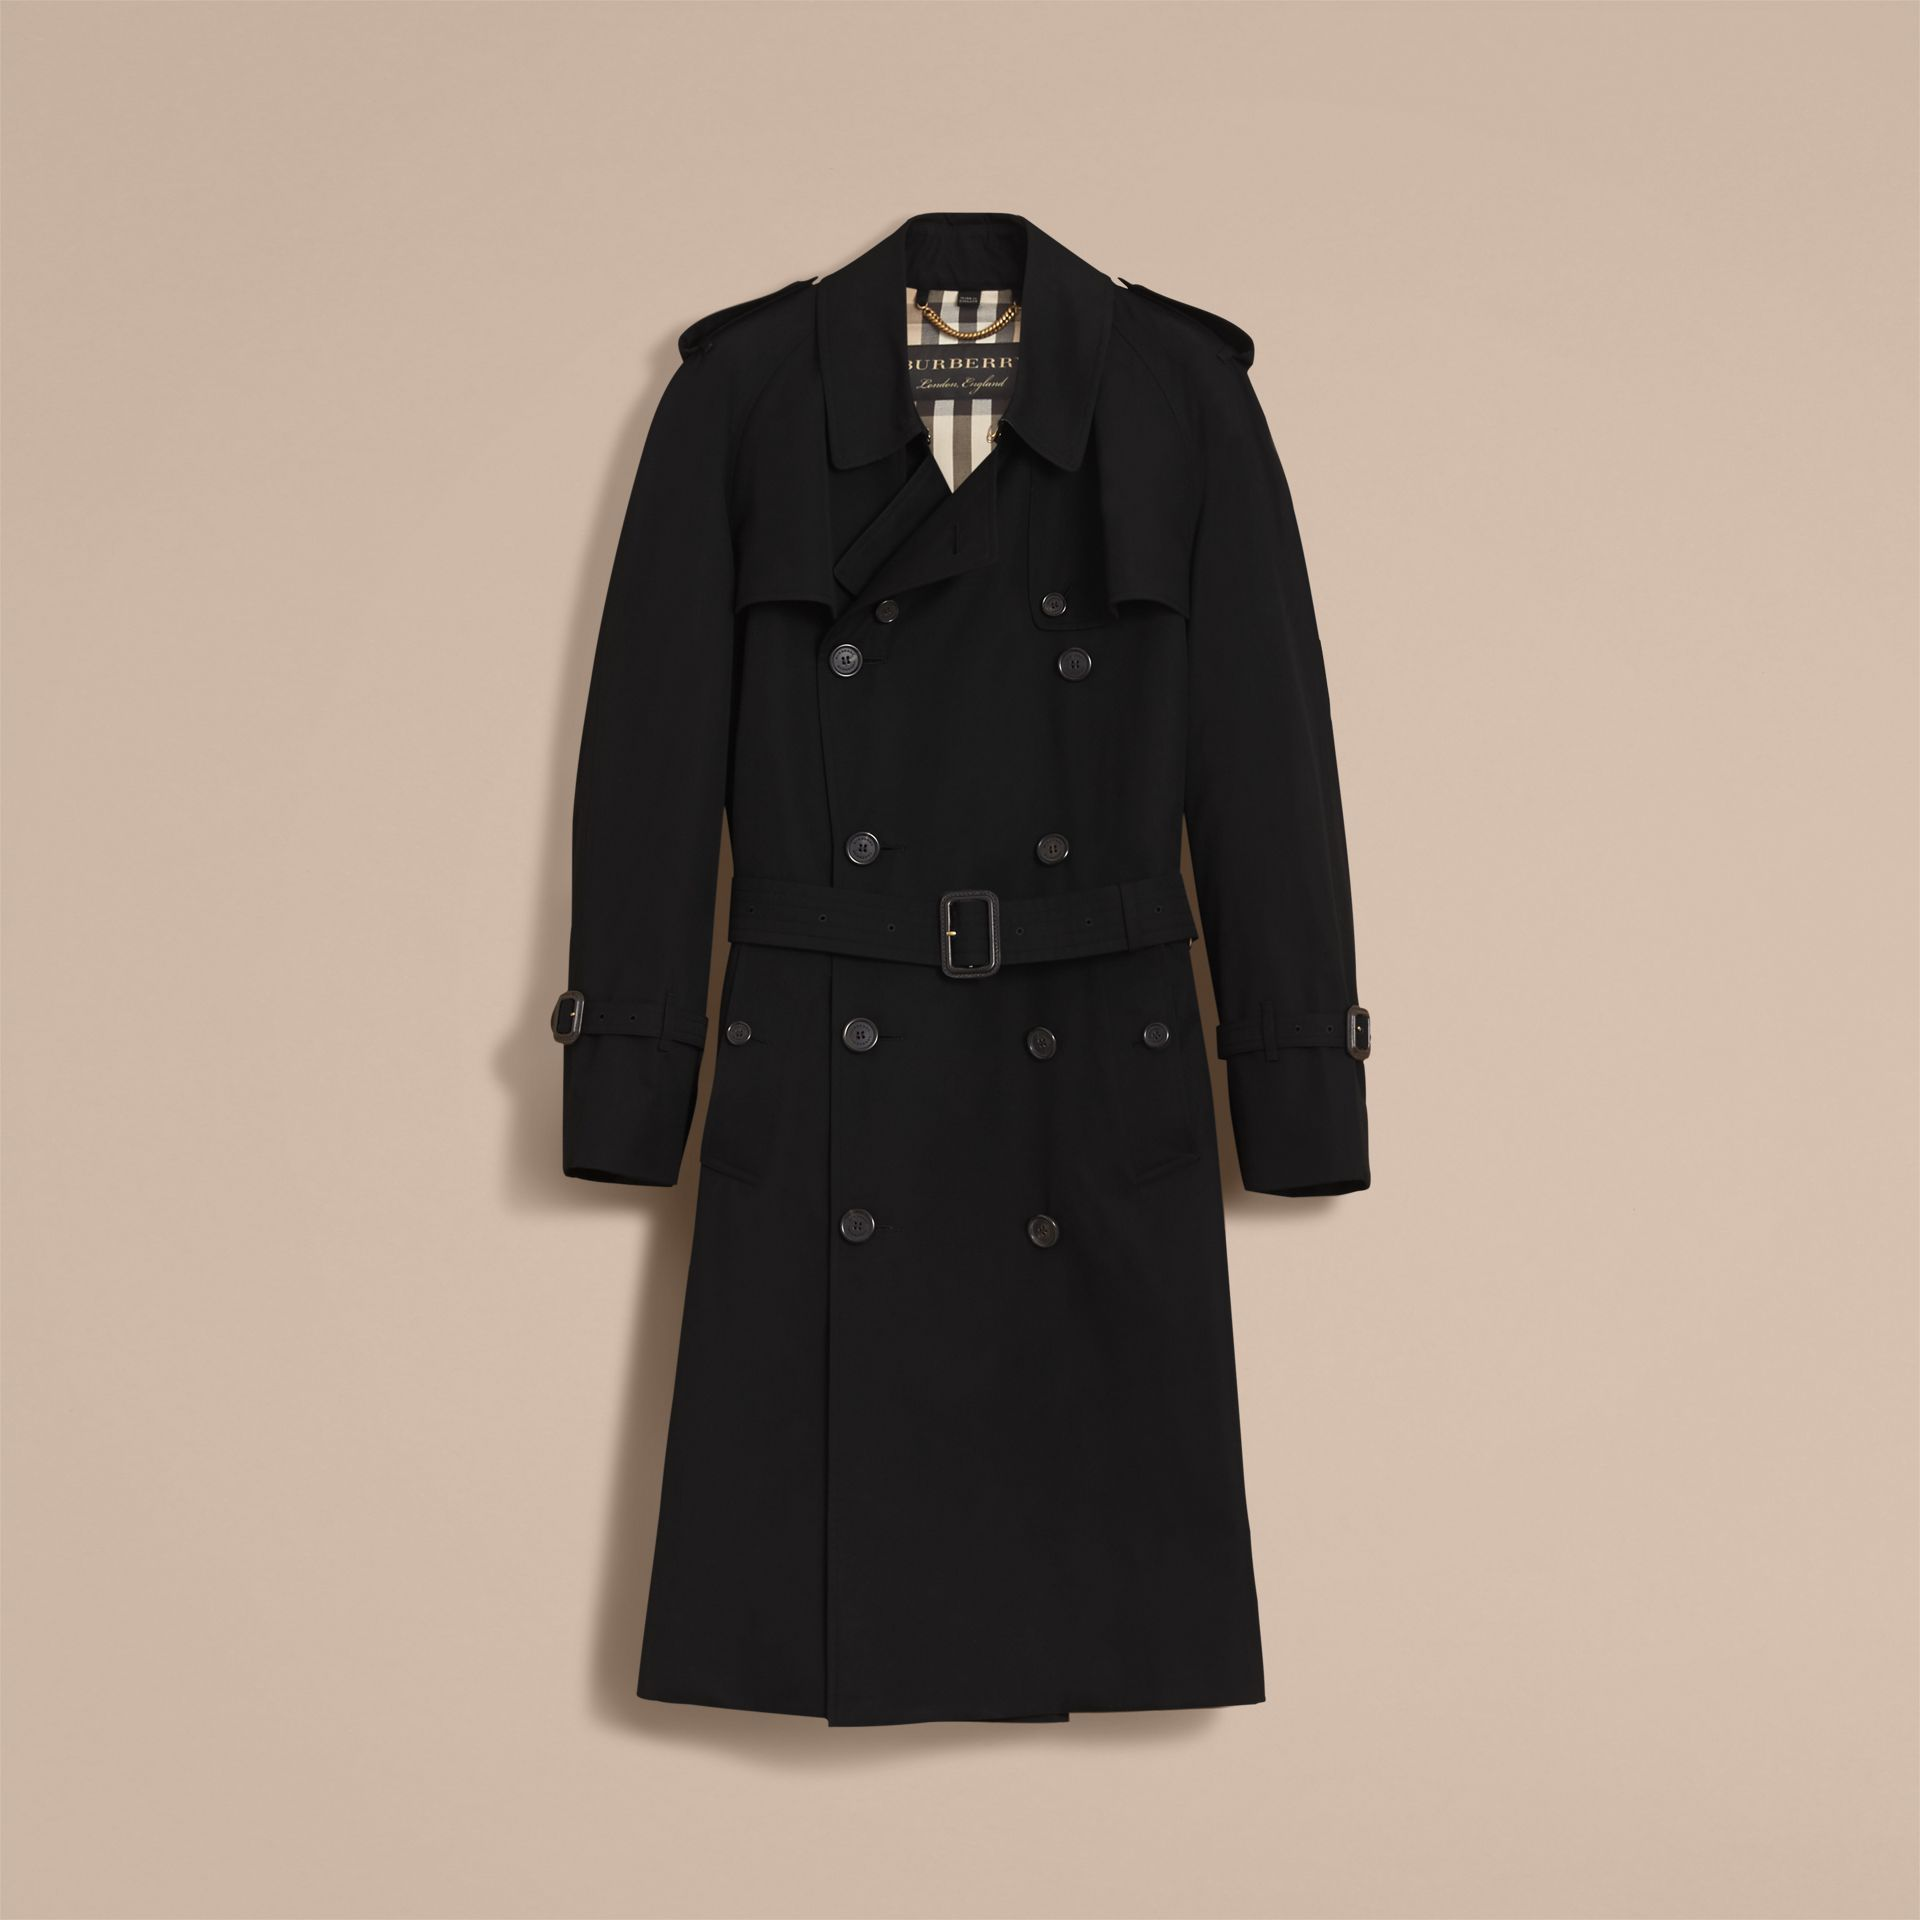 Cotton Gabardine Sculptural Trench Coat - Men | Burberry Hong Kong - gallery image 4